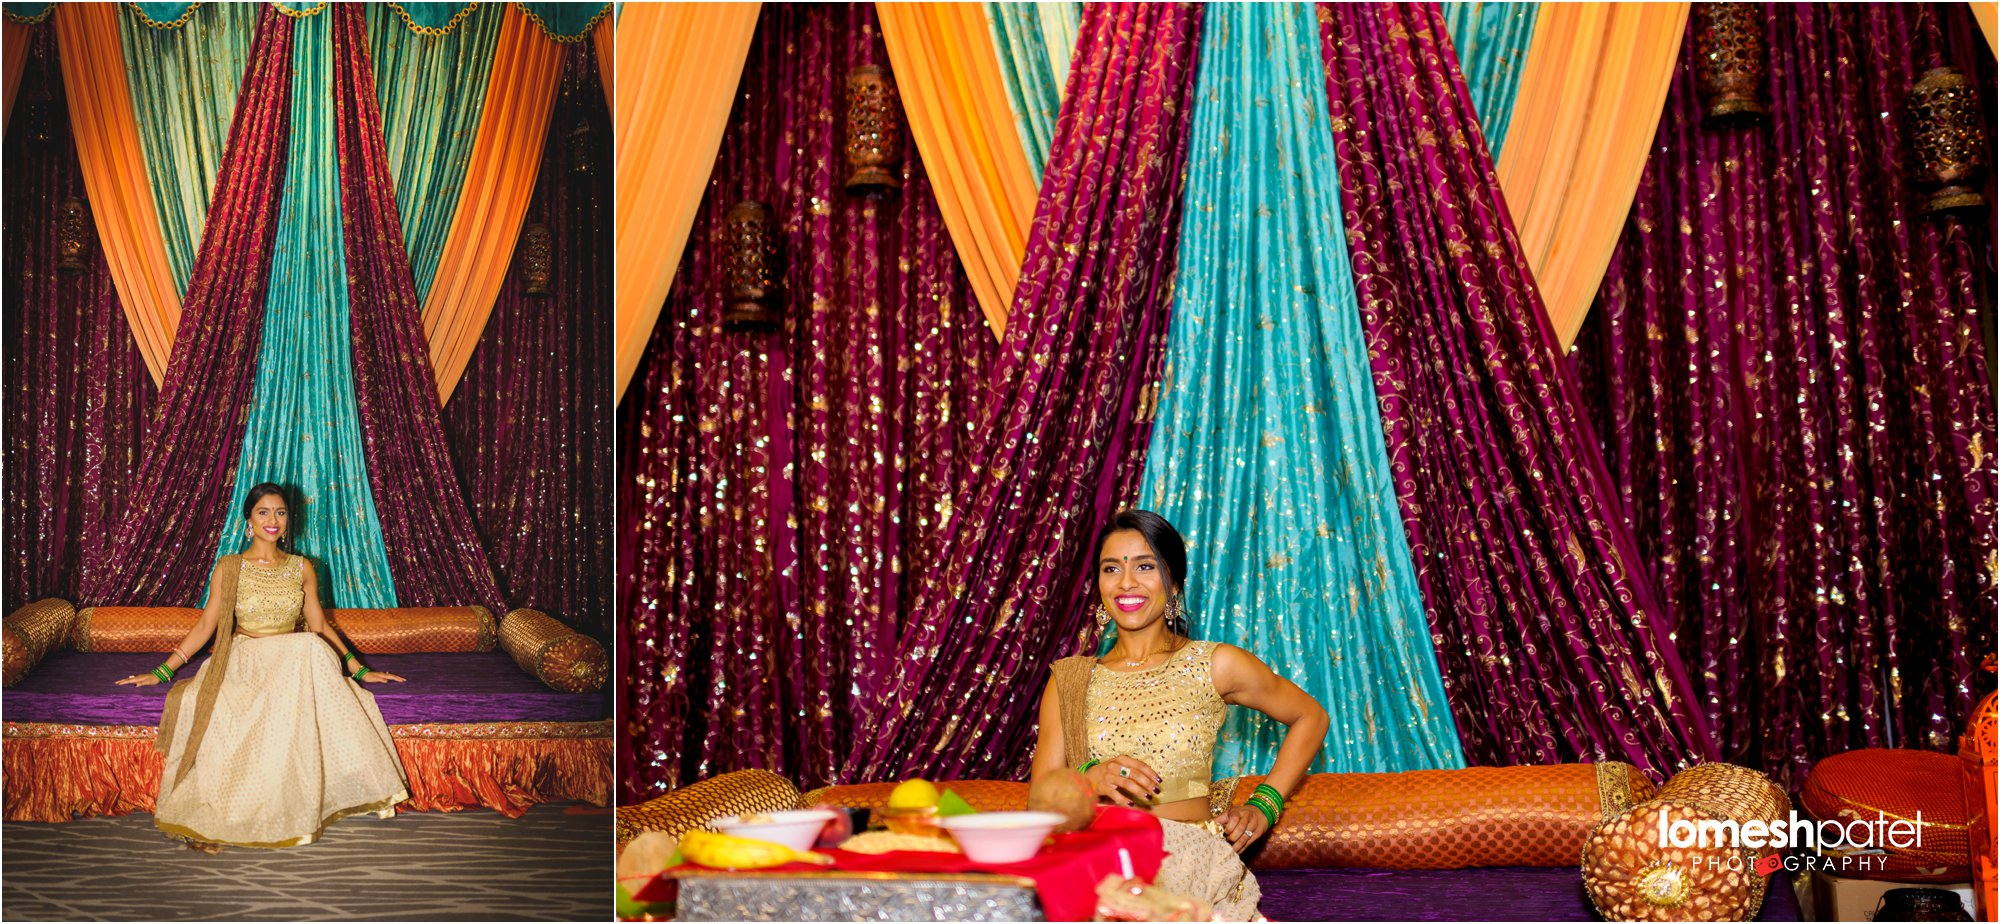 Dallasindianwedding0005 Dallas Indian Wedding Photographer